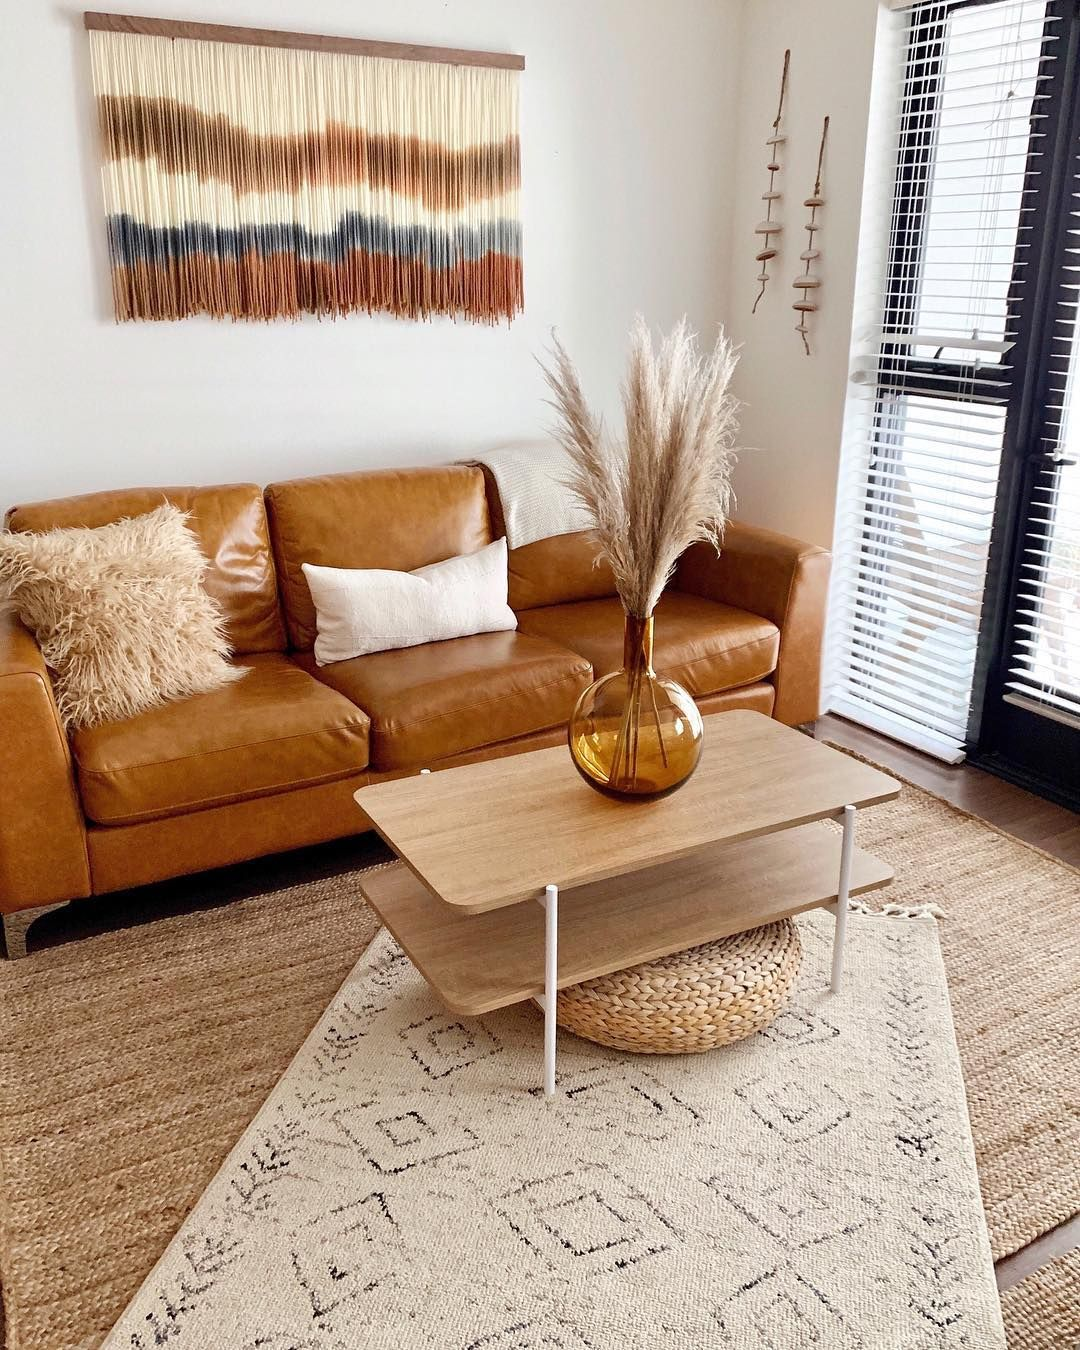 Redecorate My Living Room: If You Follow Along In My Stories, We've Been Redecorating